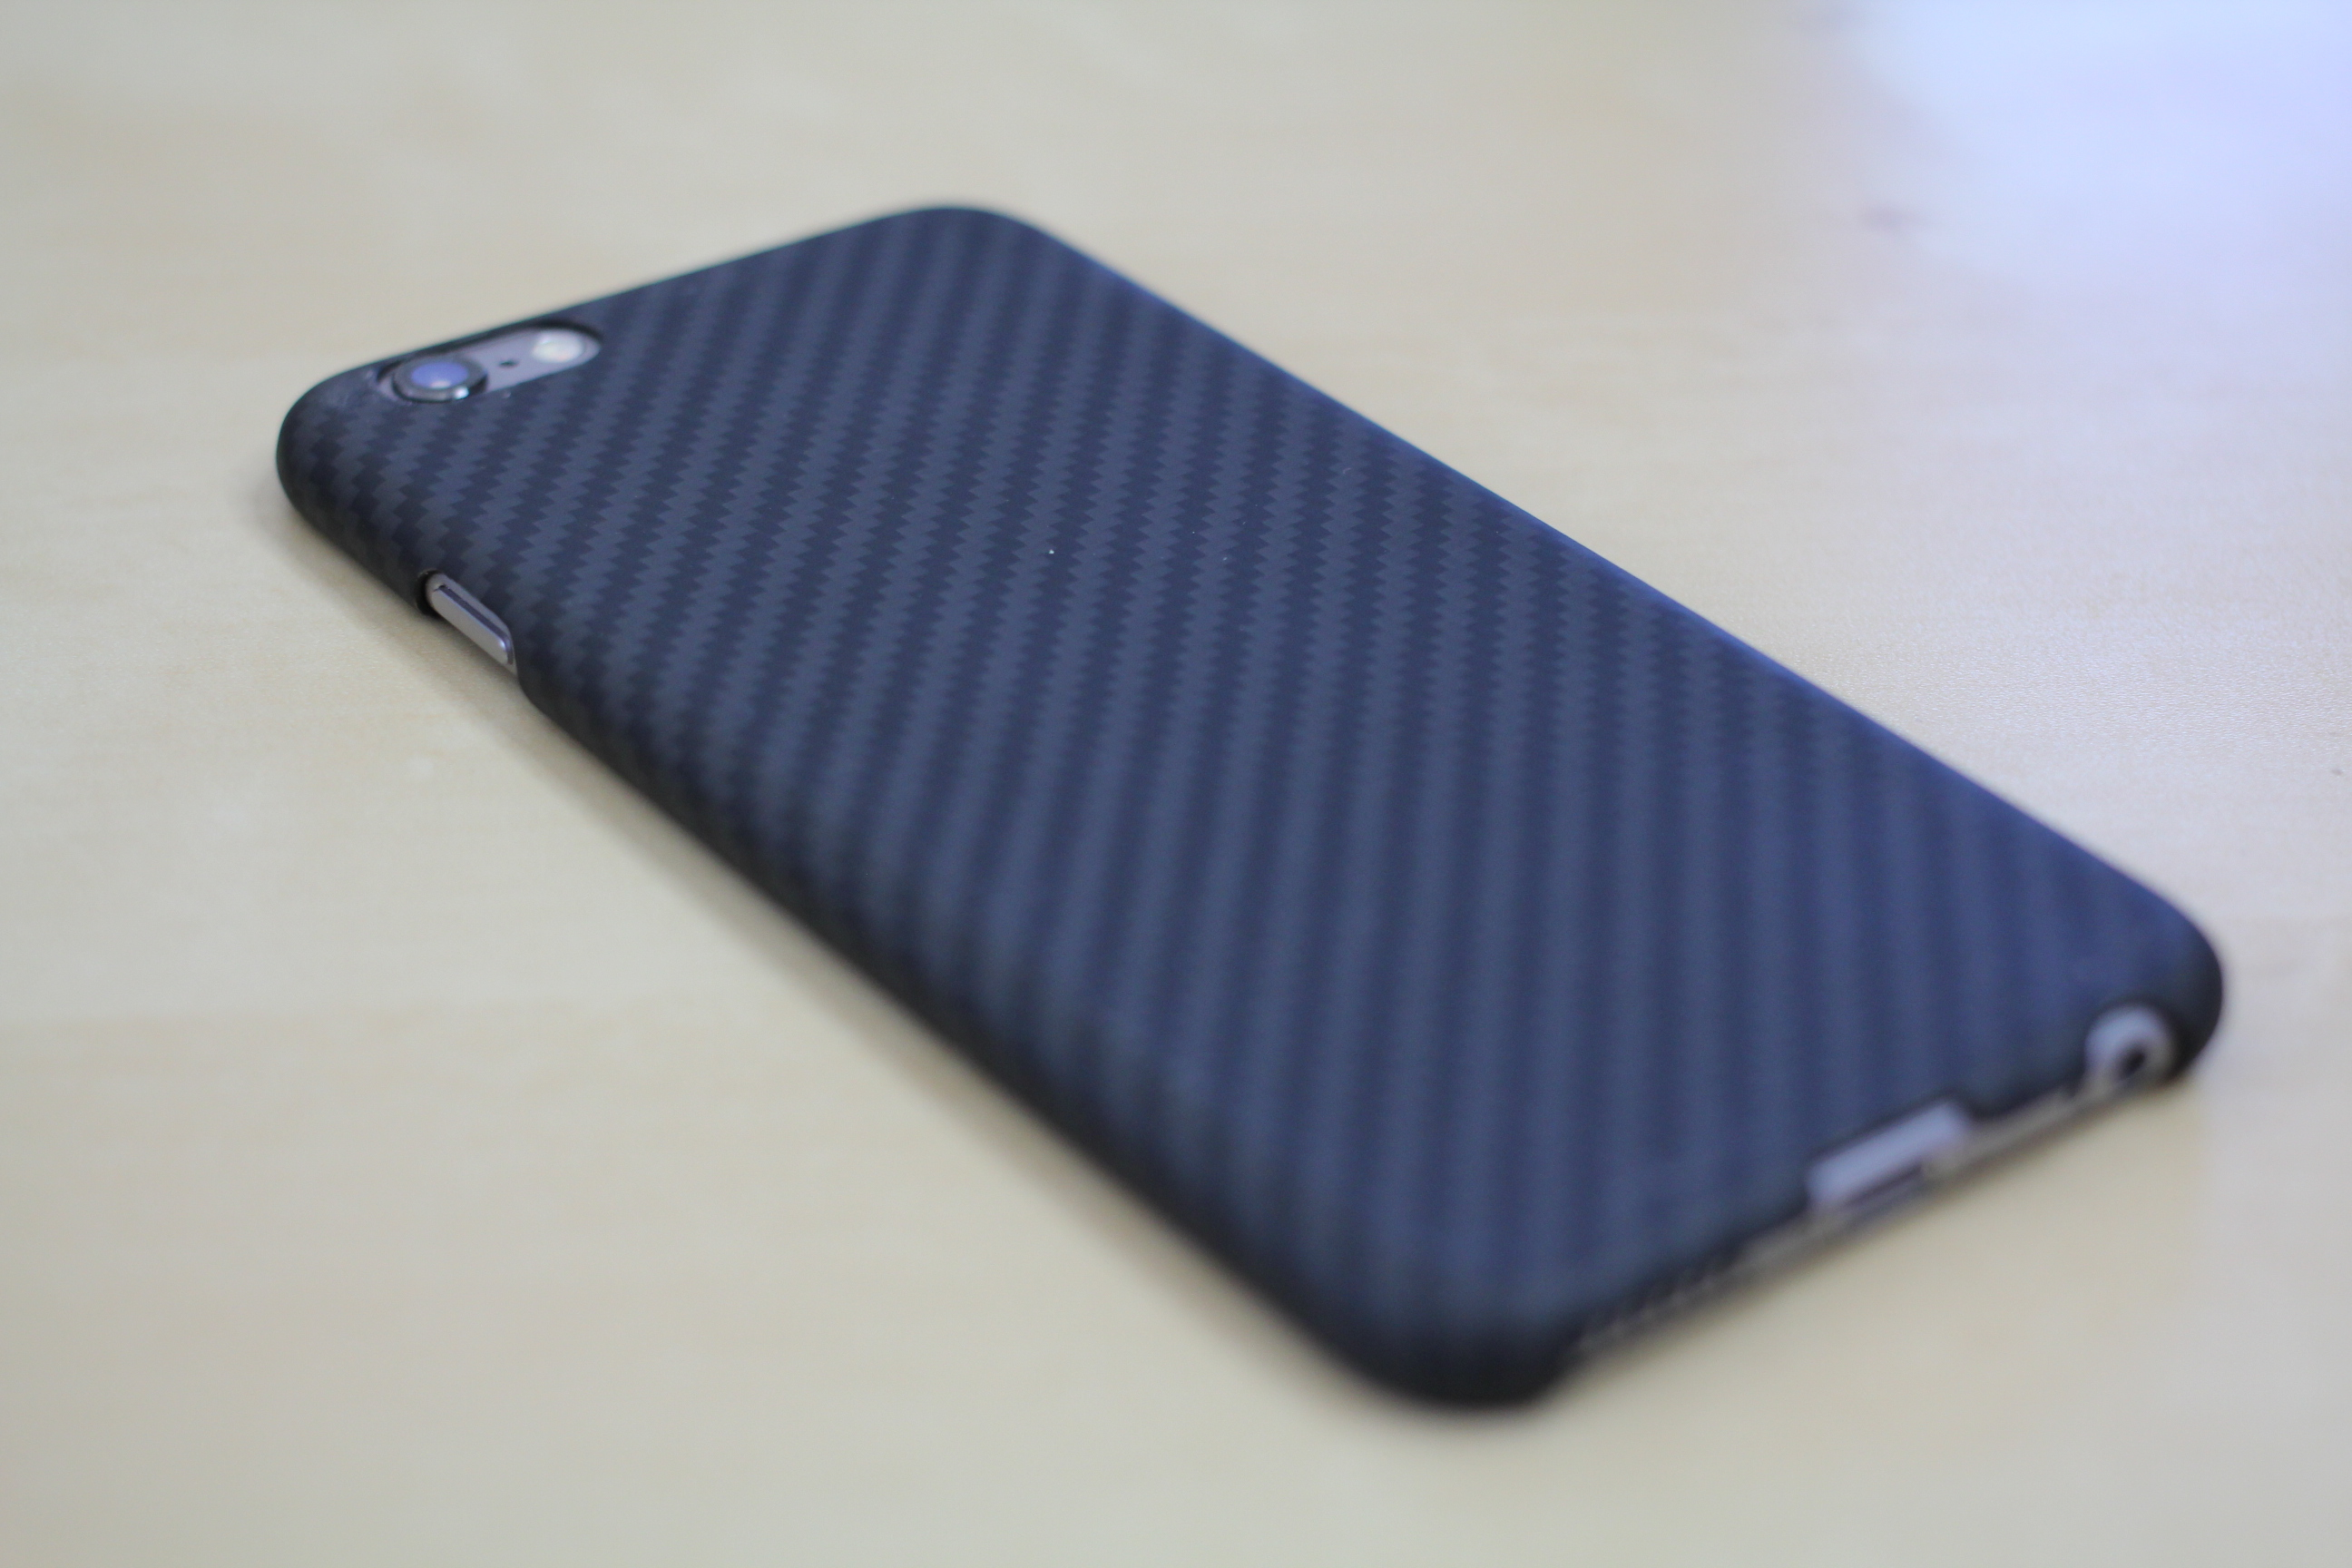 best service 3c533 51f16 Pitaka Aramid iPhone Case Review - My New Favorite iPhone Case!